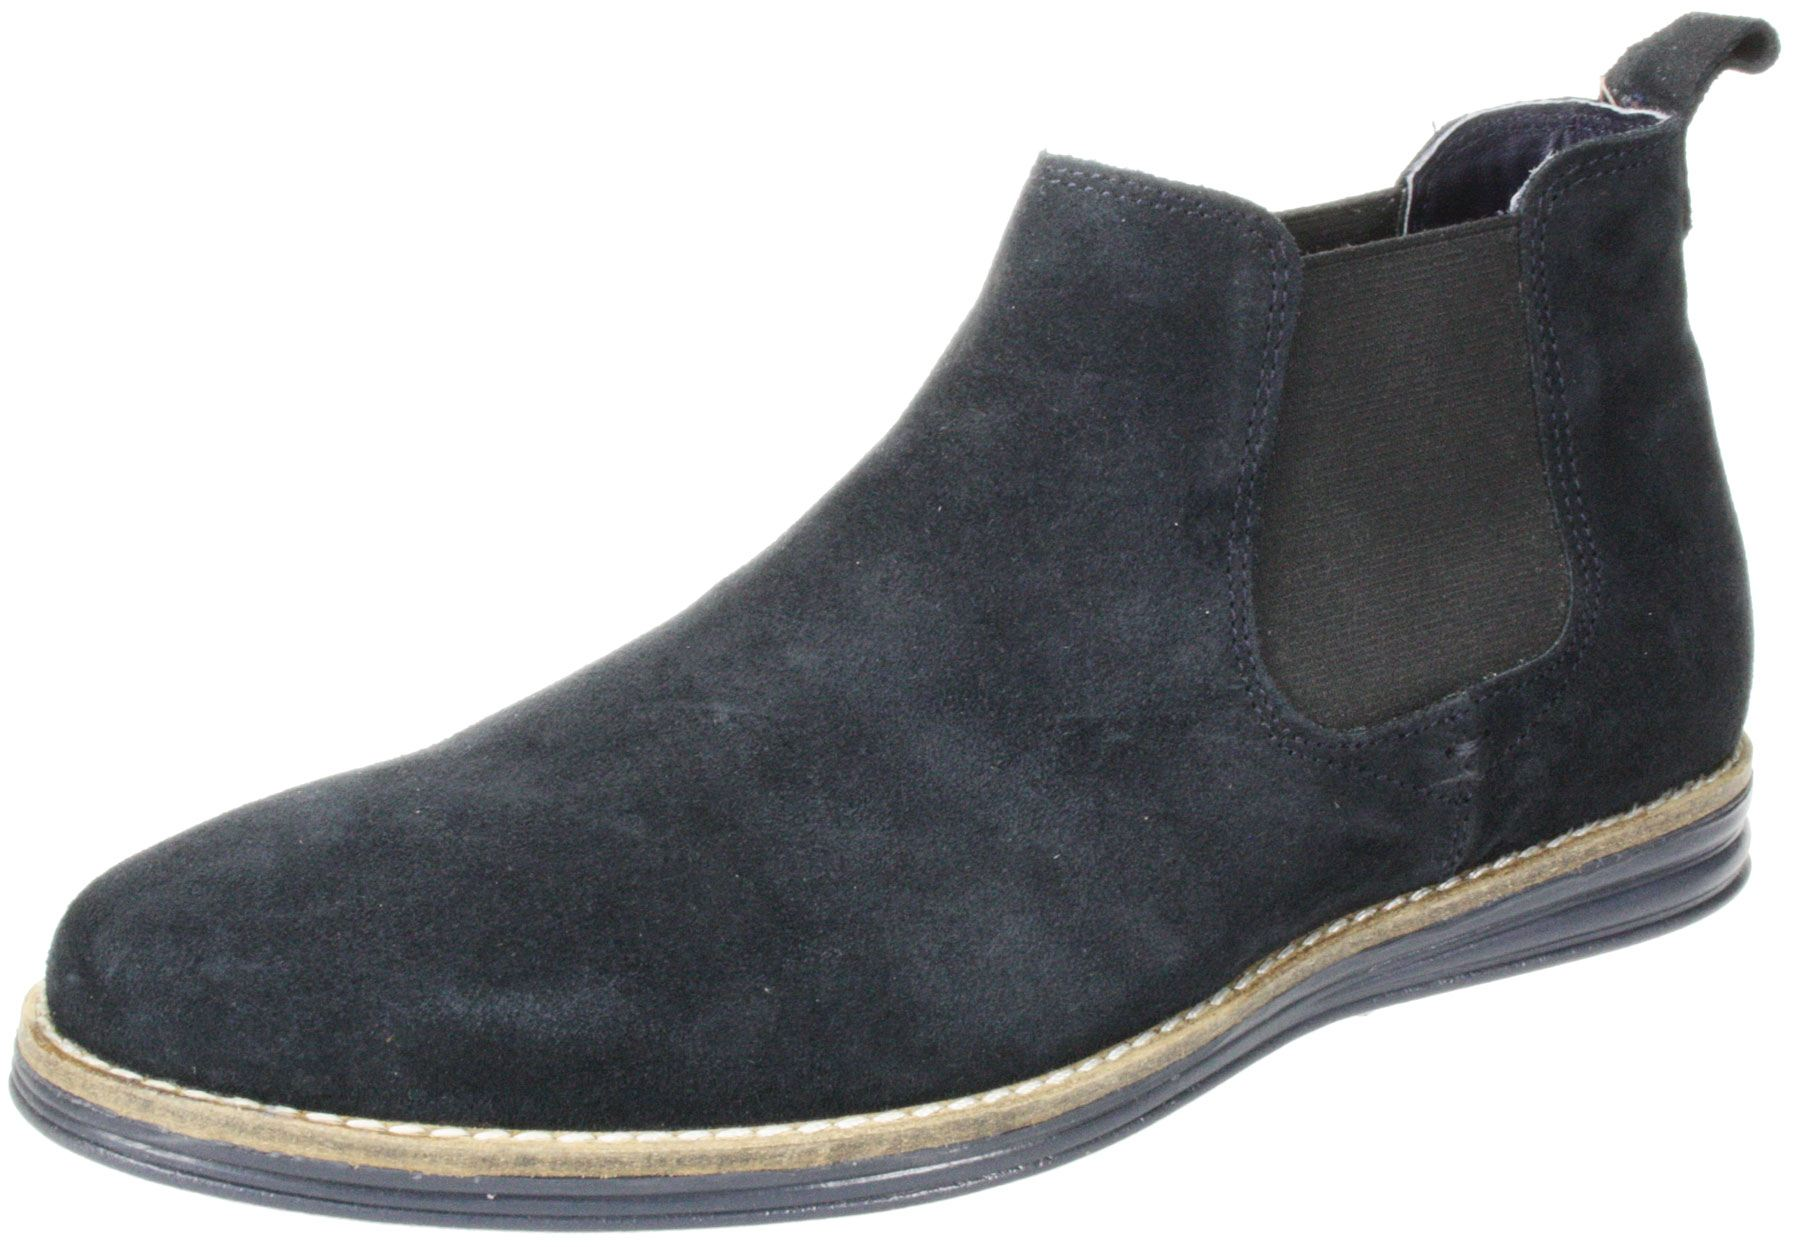 14 of the best suede Chelsea boots for autumn. The easiest way to do this is with a pair of brown suede Chelsea boots; The best hiking boots for men.